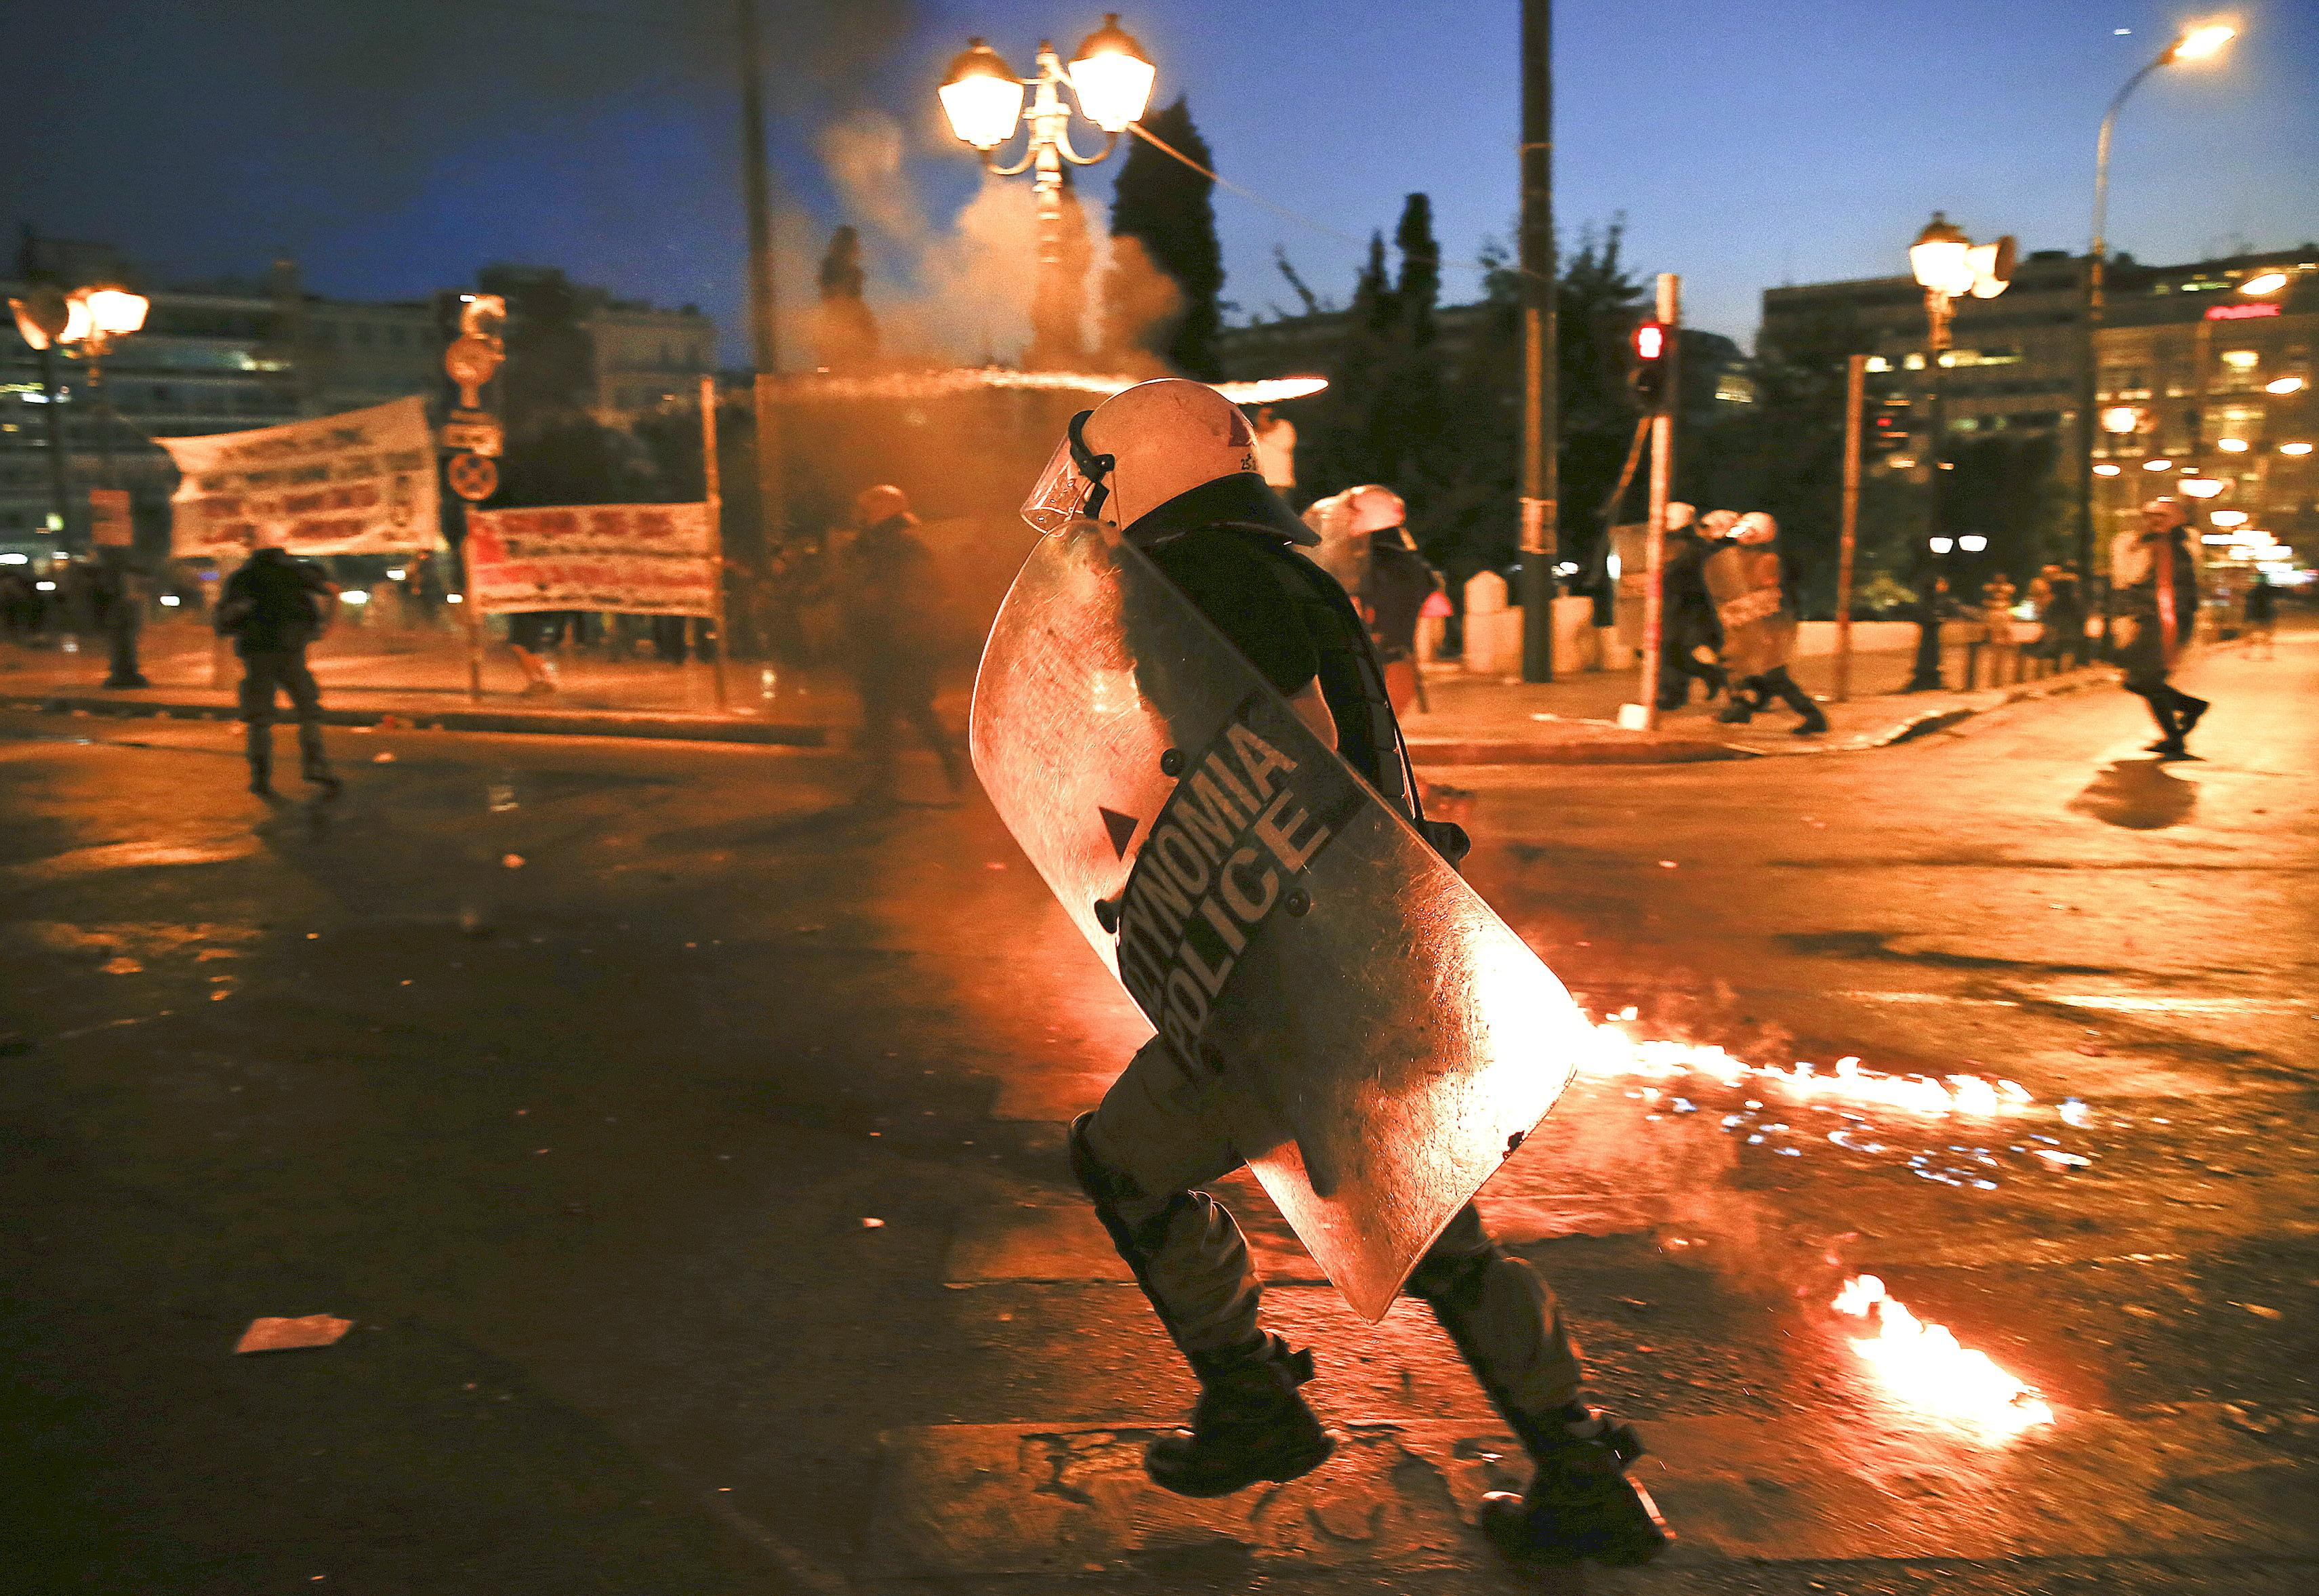 GreeceProtests_July152015_1